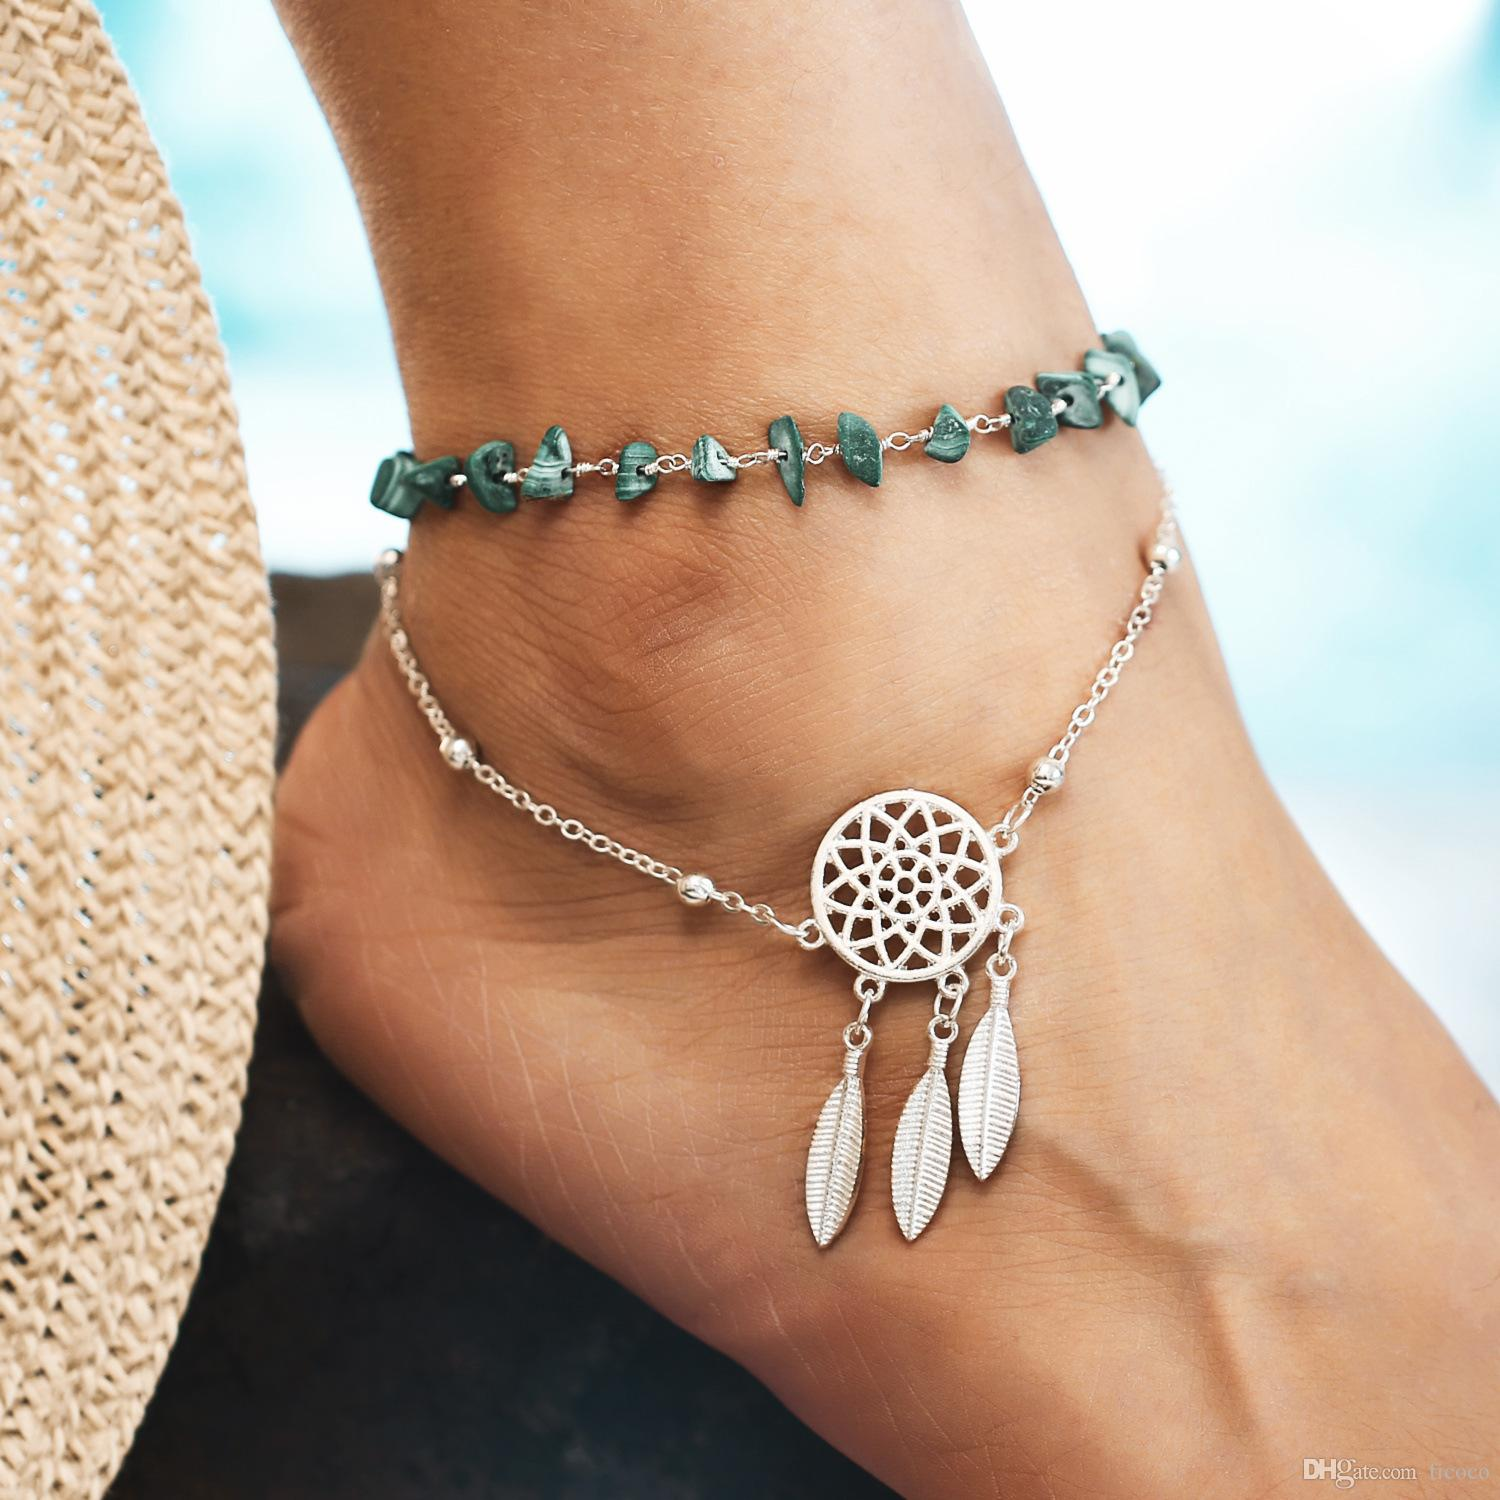 Women Imitation Turquoise Beads Handmade Anklet Foot Chain Ankle Bracelet Xi Jewelry & Watches